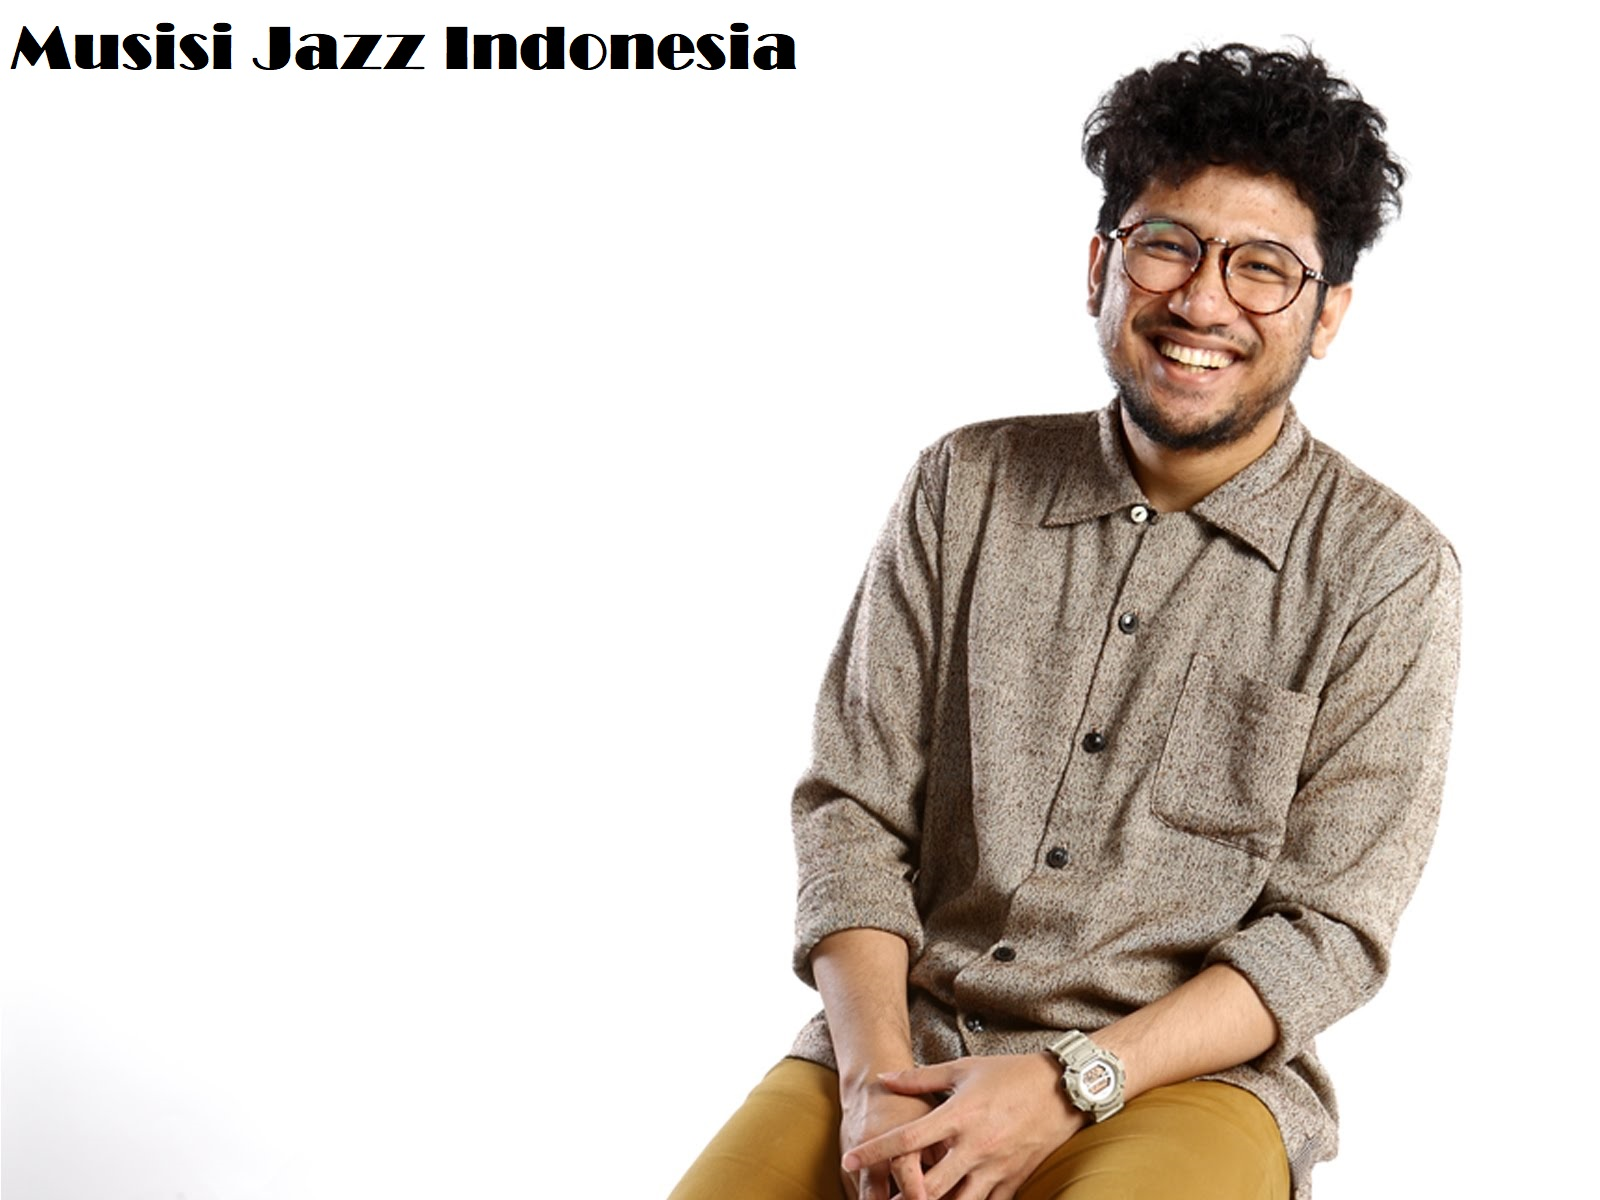 Musisi Jazz Indonesia